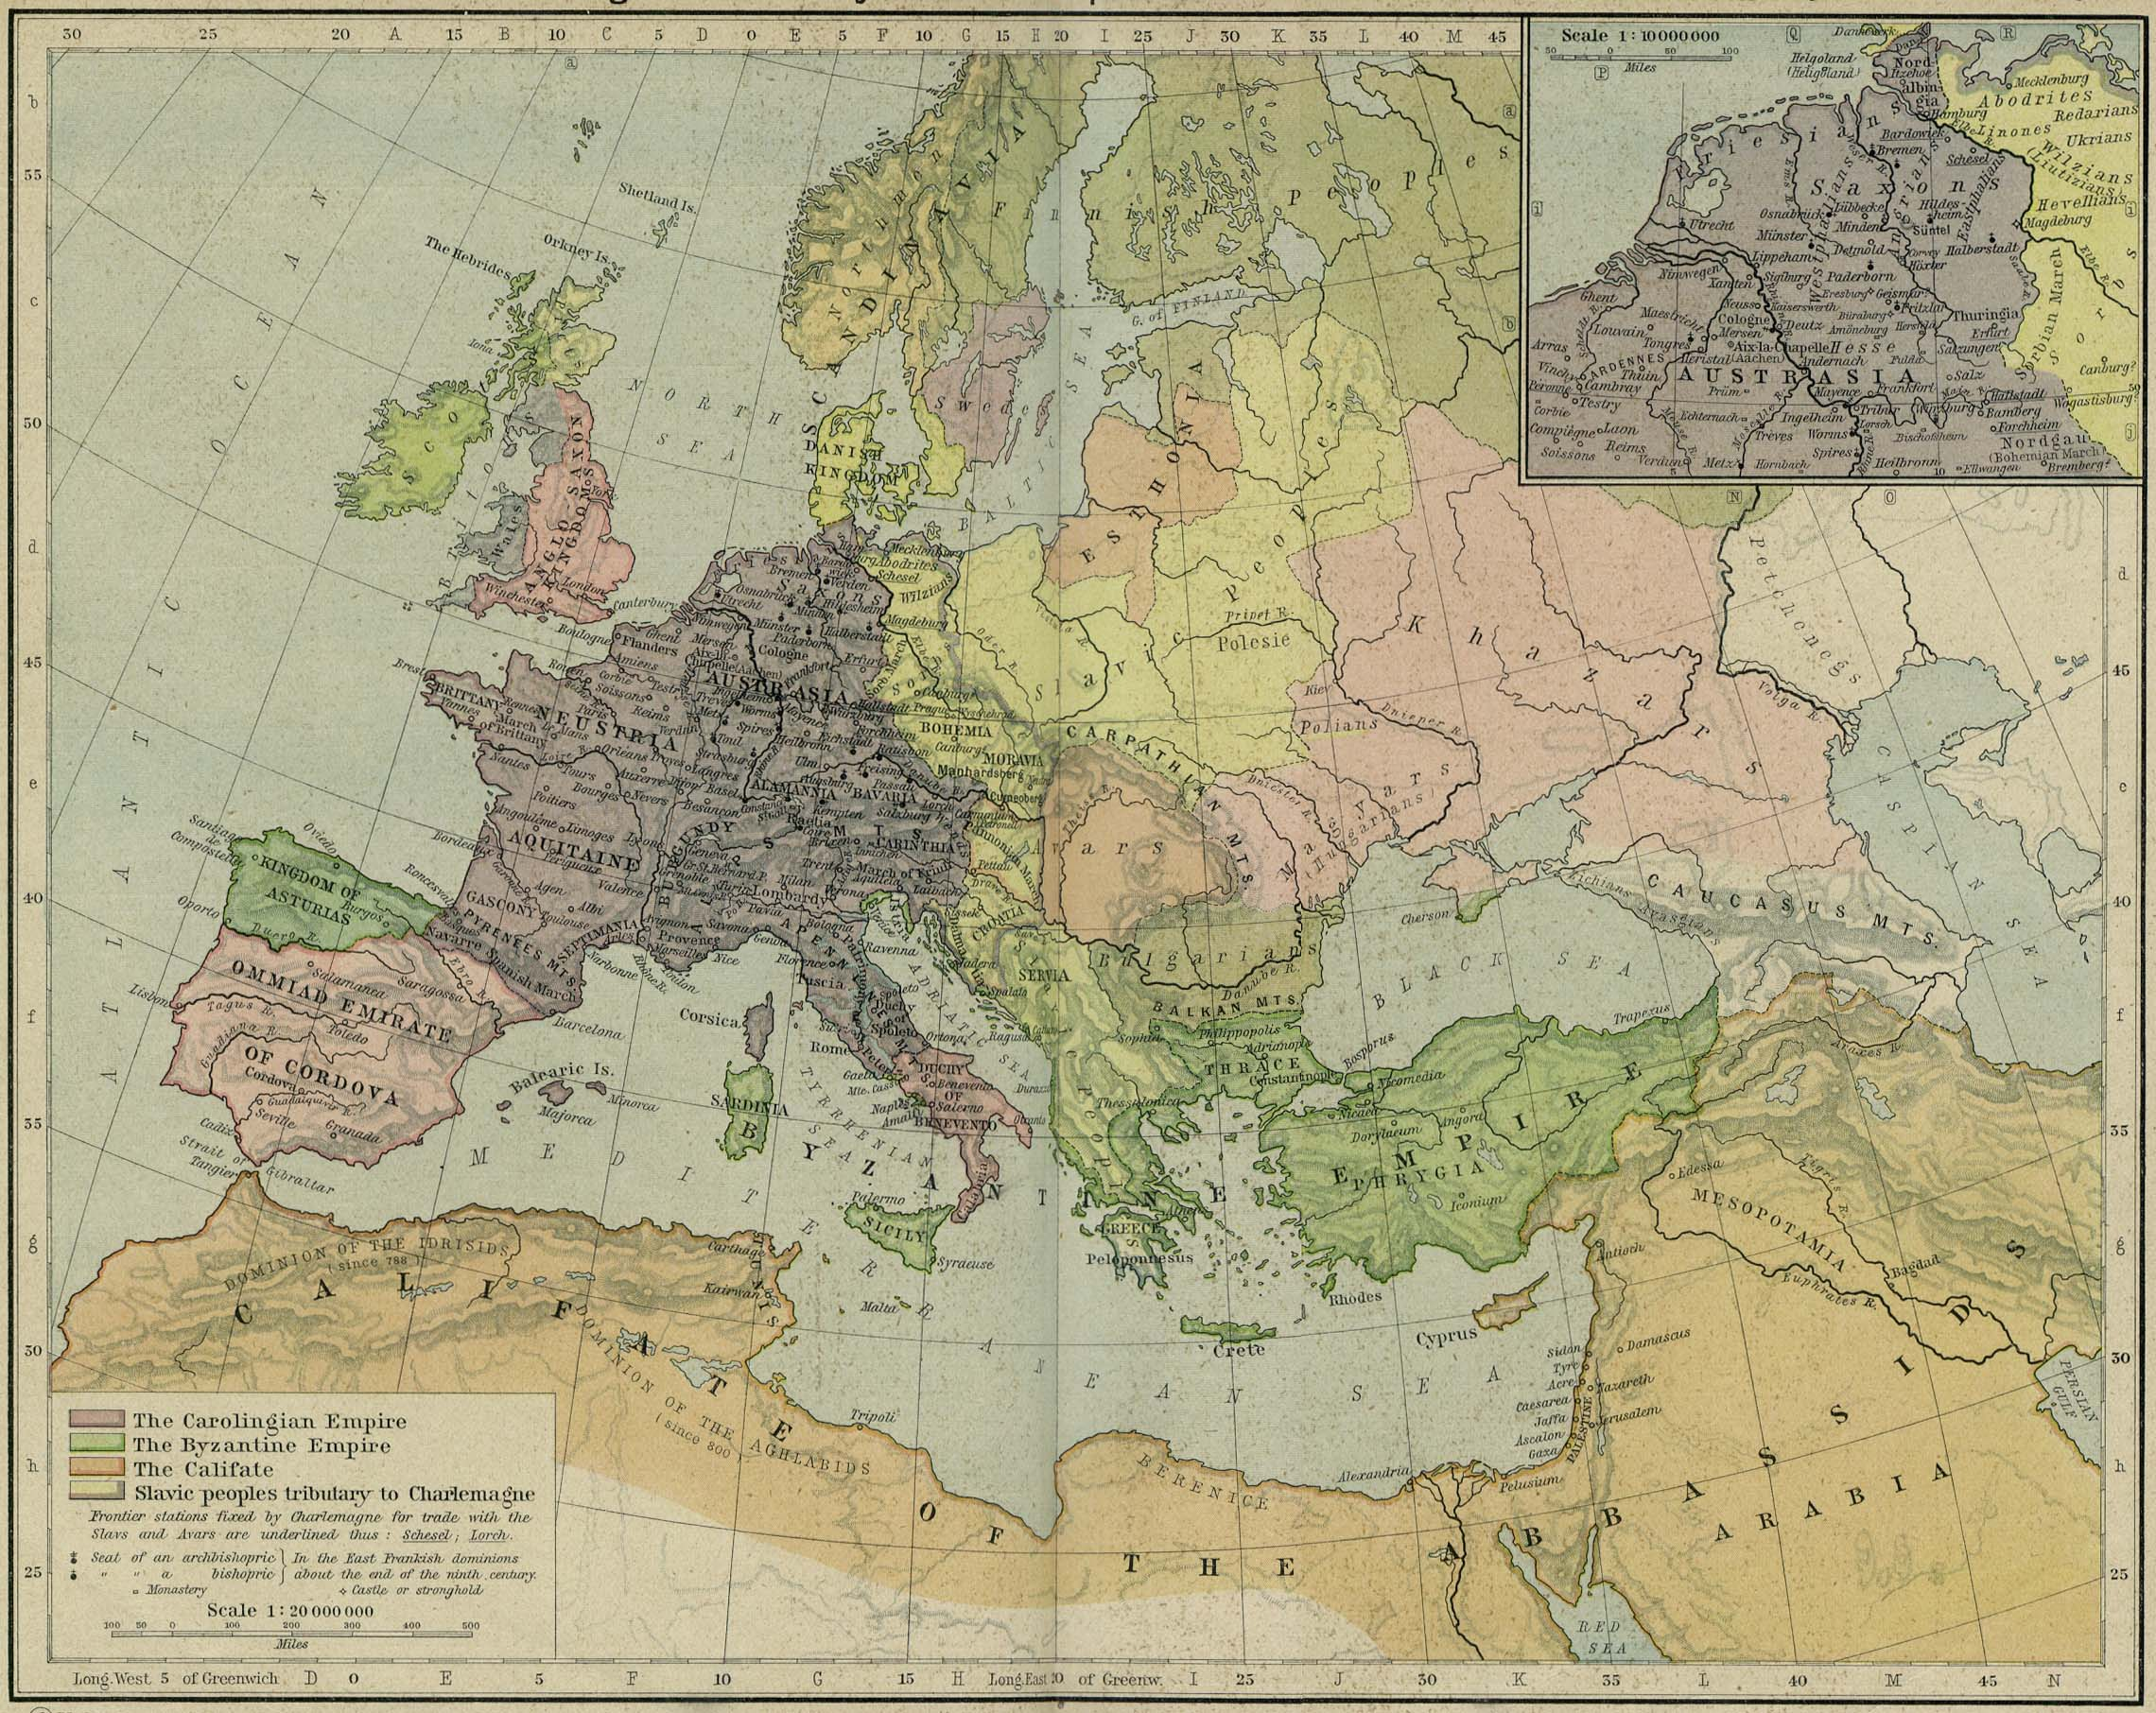 Map of the Carolingian and Byzantine Empires and the Califate about 814. Inset: Northern Austrasia 814